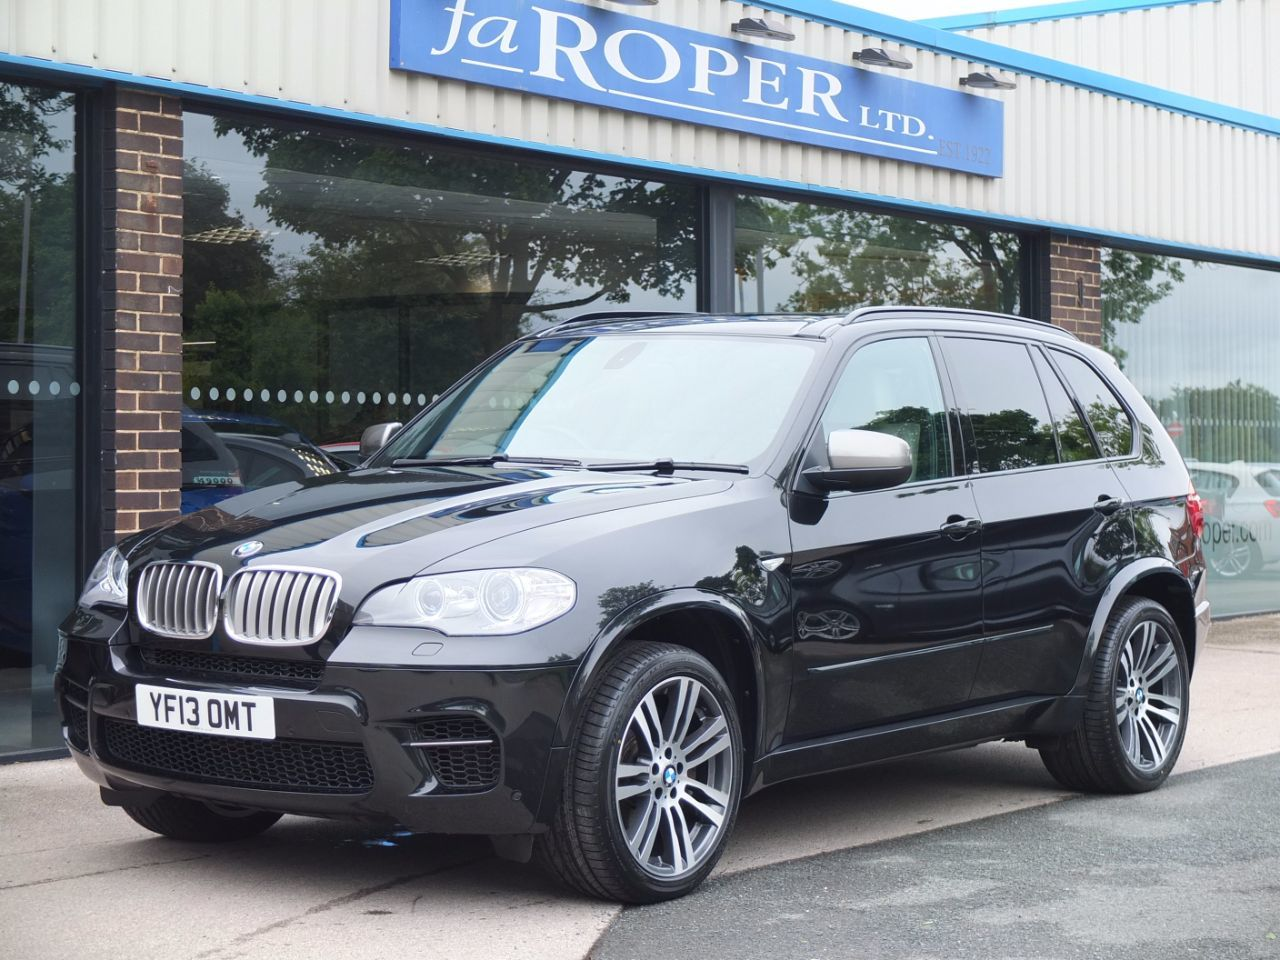 BMW X5 3.0 xDrive M50d M Performance Auto +++Spec Estate Diesel Black Sapphire MetallicBMW X5 3.0 xDrive M50d M Performance Auto +++Spec Estate Diesel Black Sapphire Metallic at fa Roper Ltd Bradford